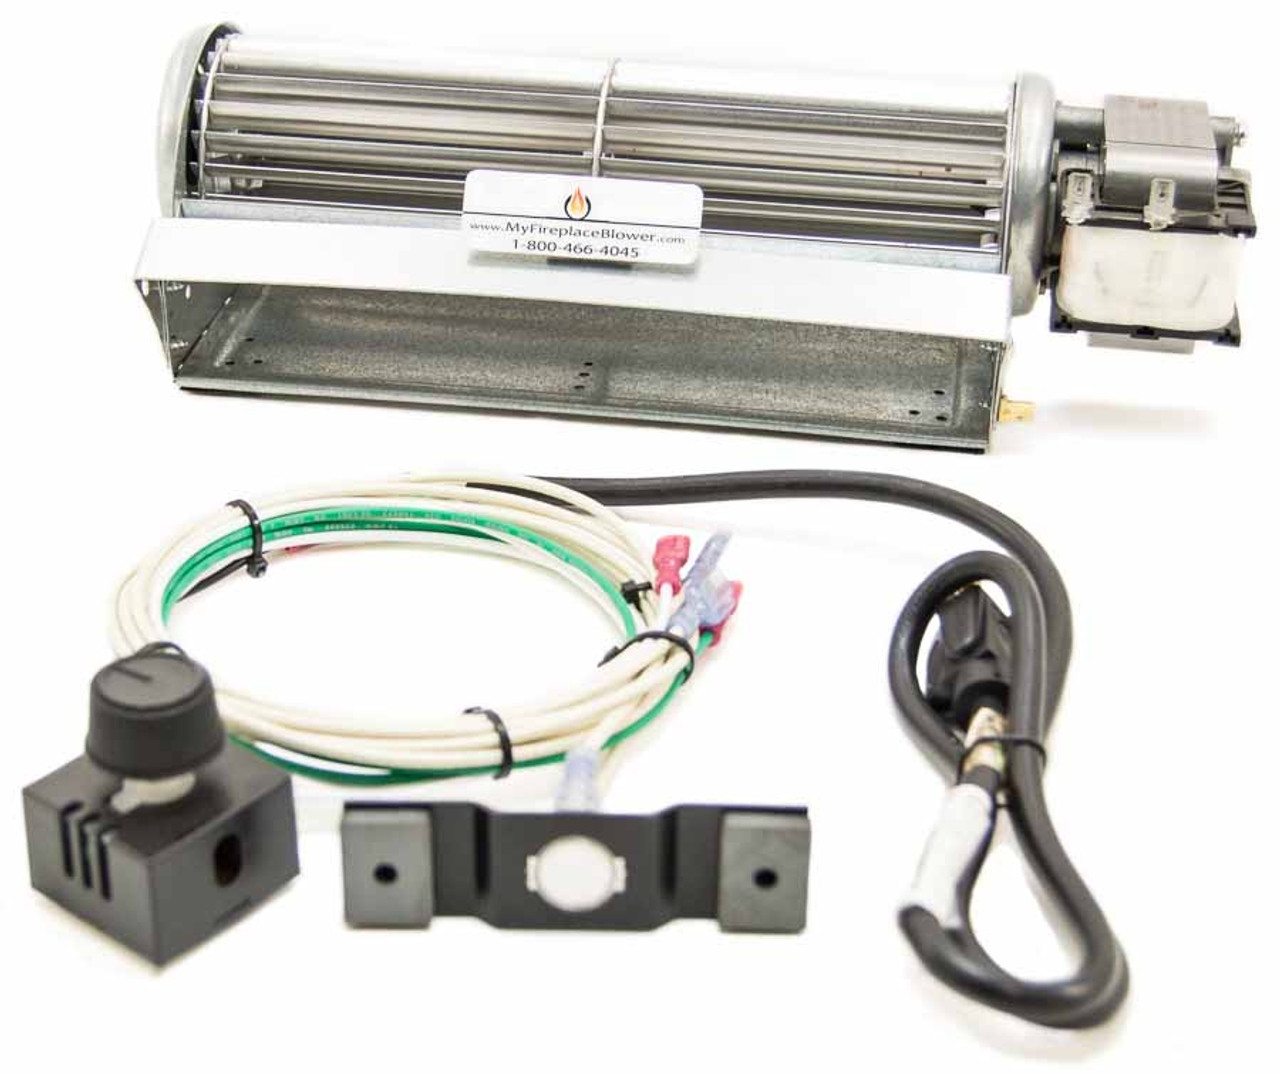 hight resolution of blot240 fireplace blower fan kit for martin gas fireplaces